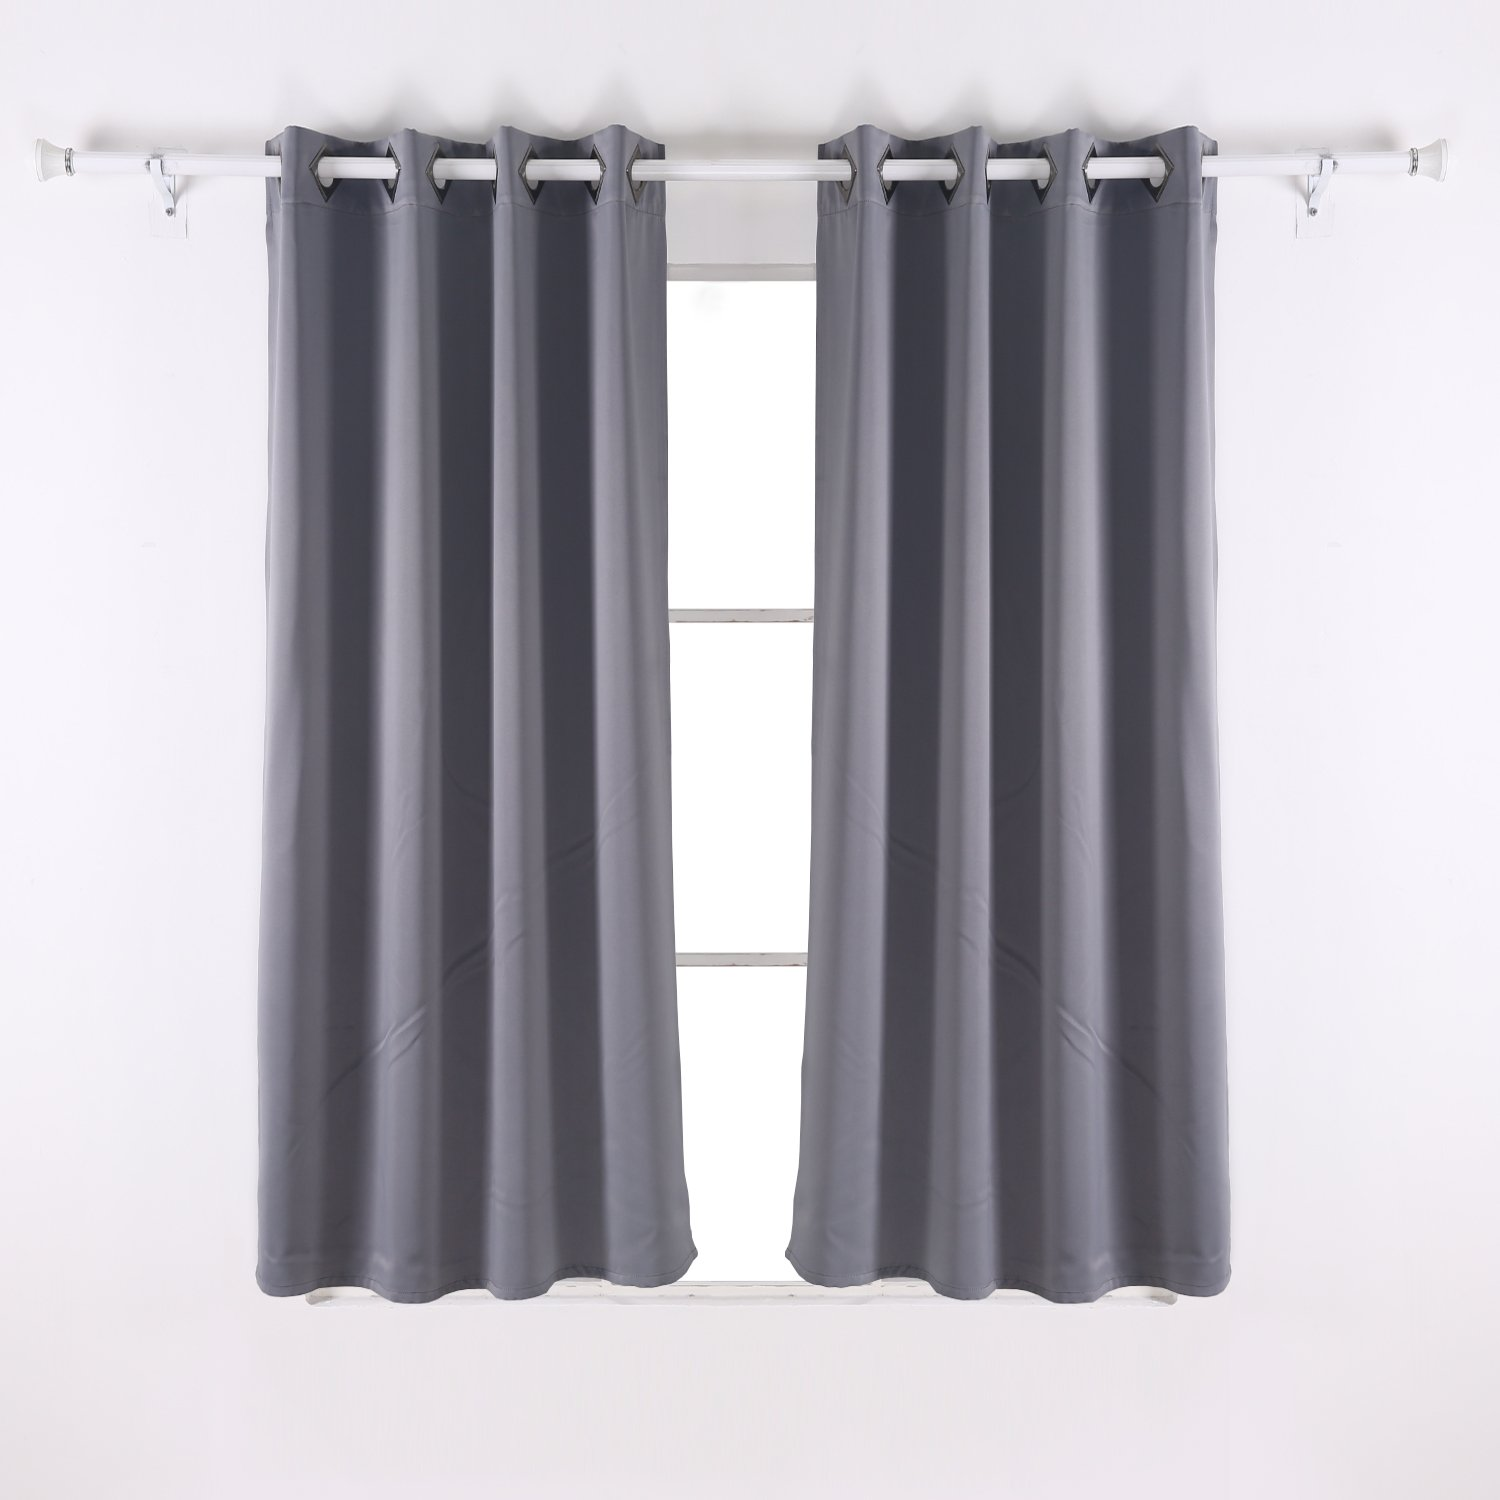 Amazon.com: Deconovo Solid Room Darkening Curtains Thermal ... for Off White Bedroom Curtains  155sfw